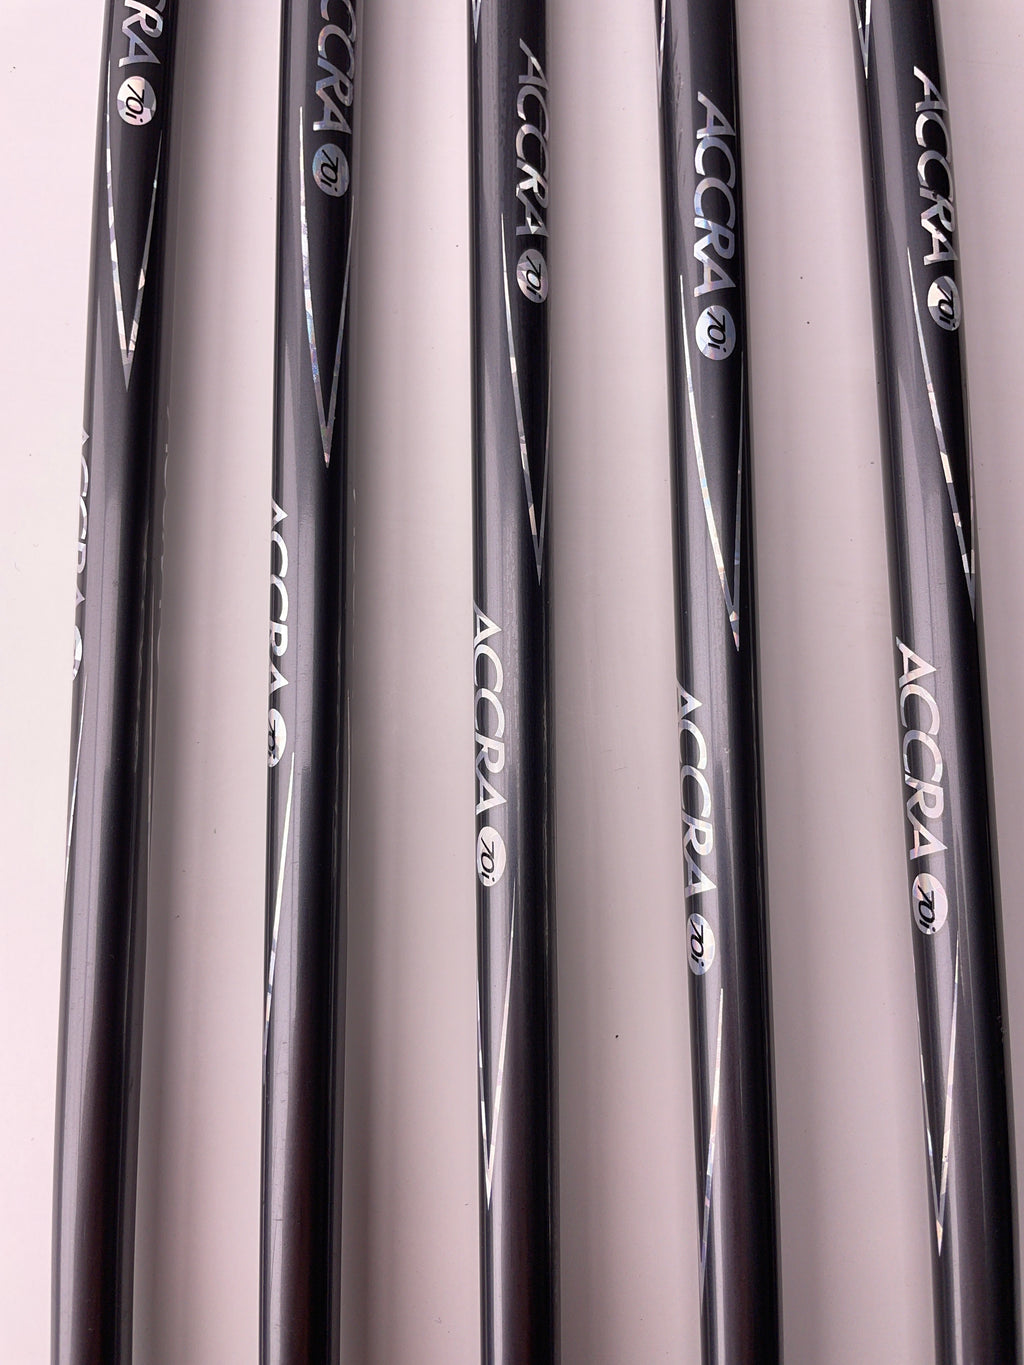 "Graphite Design Tour AD DI-85S Hybrid Shaft / Stiff Flex / 39.5"" / Titleist Adapter"